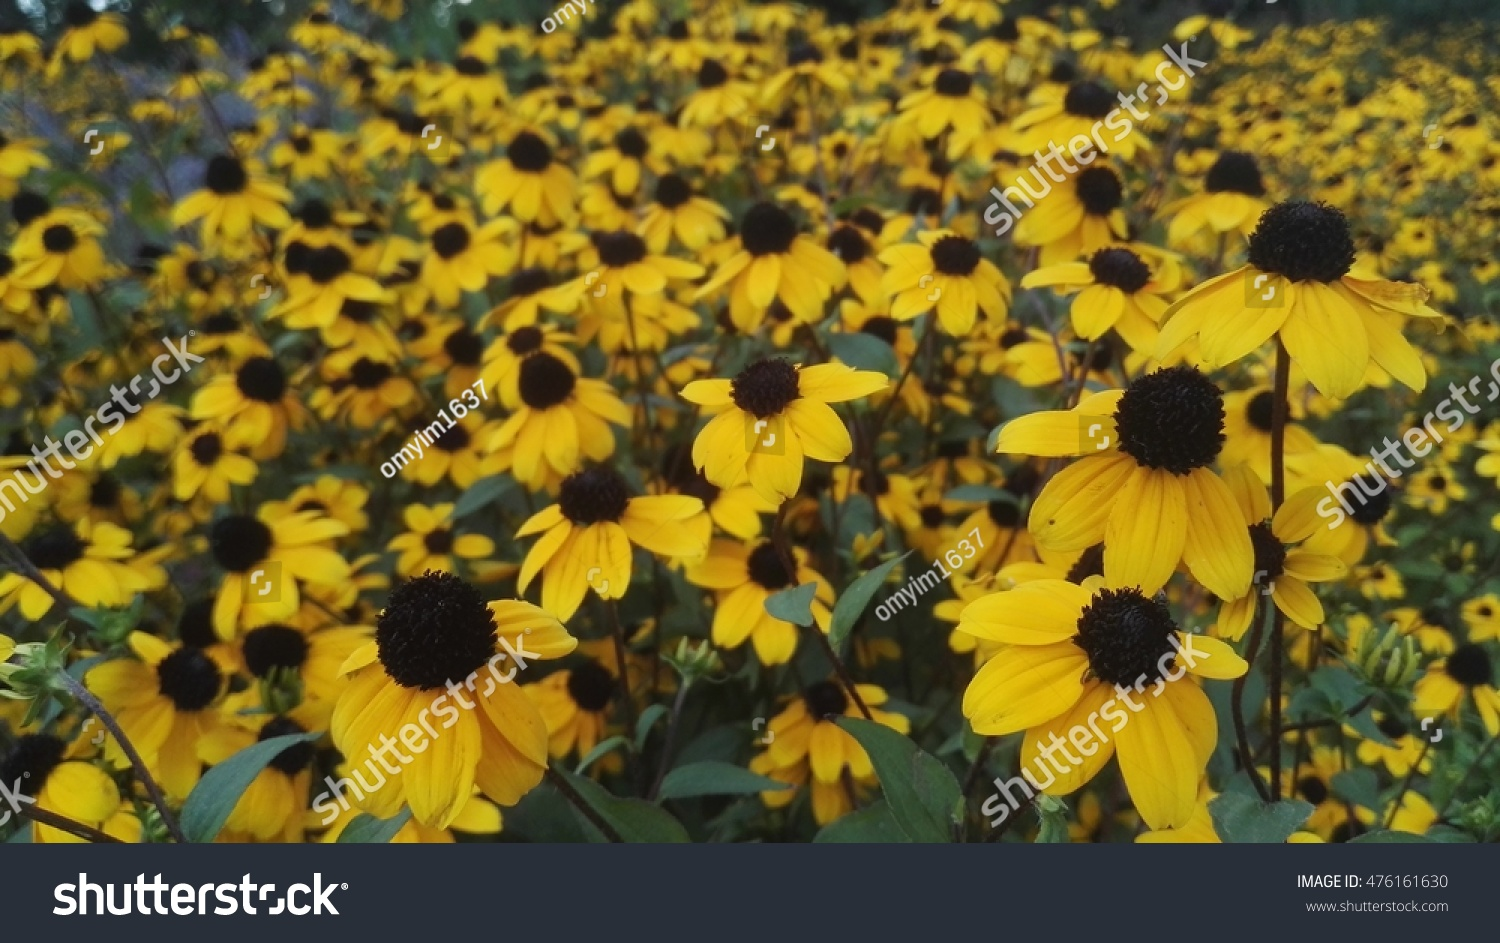 Lot Of Yellow Flower With Black Pollen Center In The Little Garden